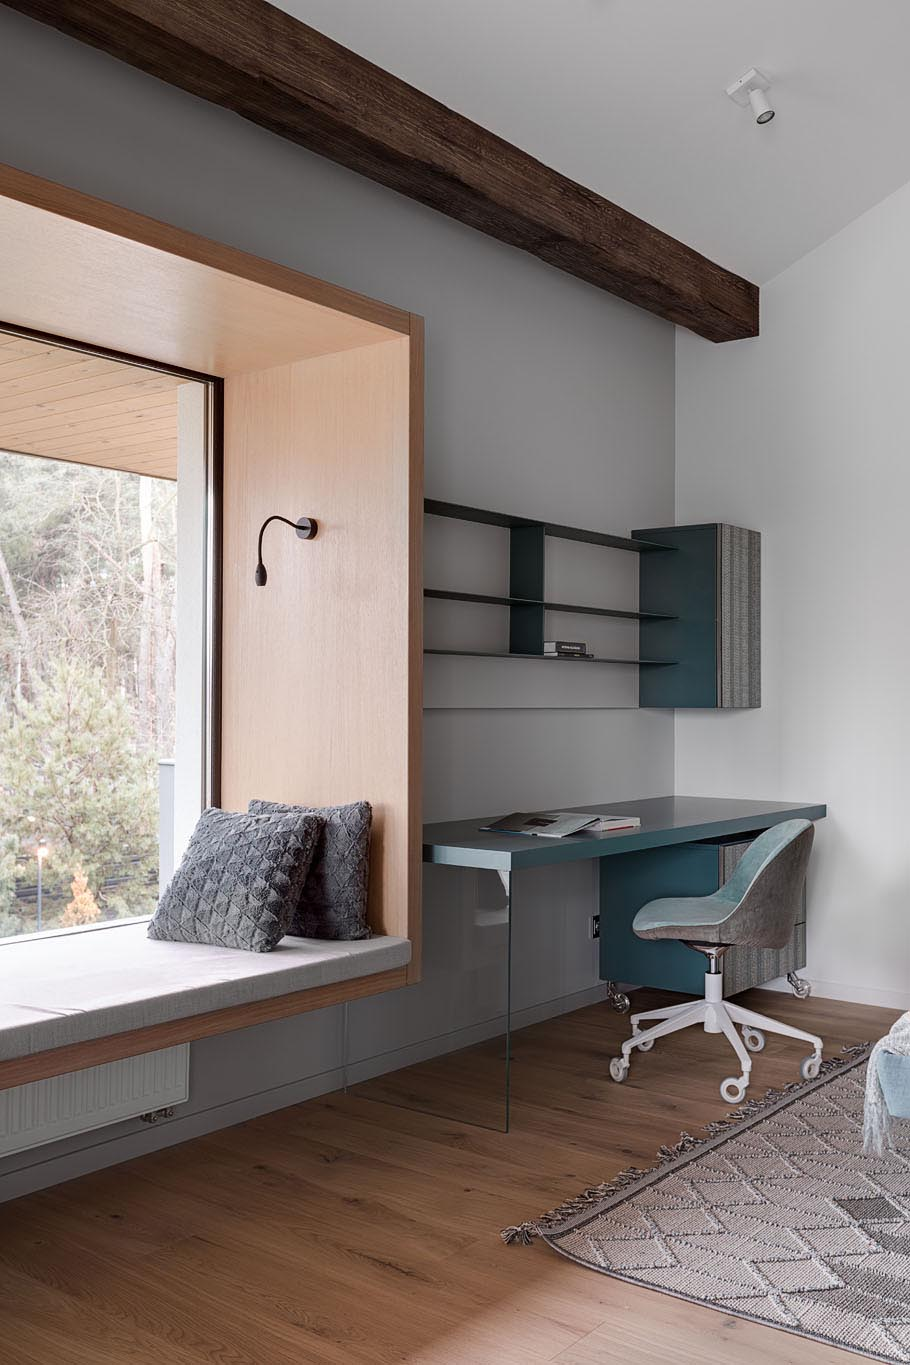 In this modern bedroom, there's a custom designed built-in window seat with views of the neighborhood. The bedroom also includes a desk with shelving above, and exposed wood beams.